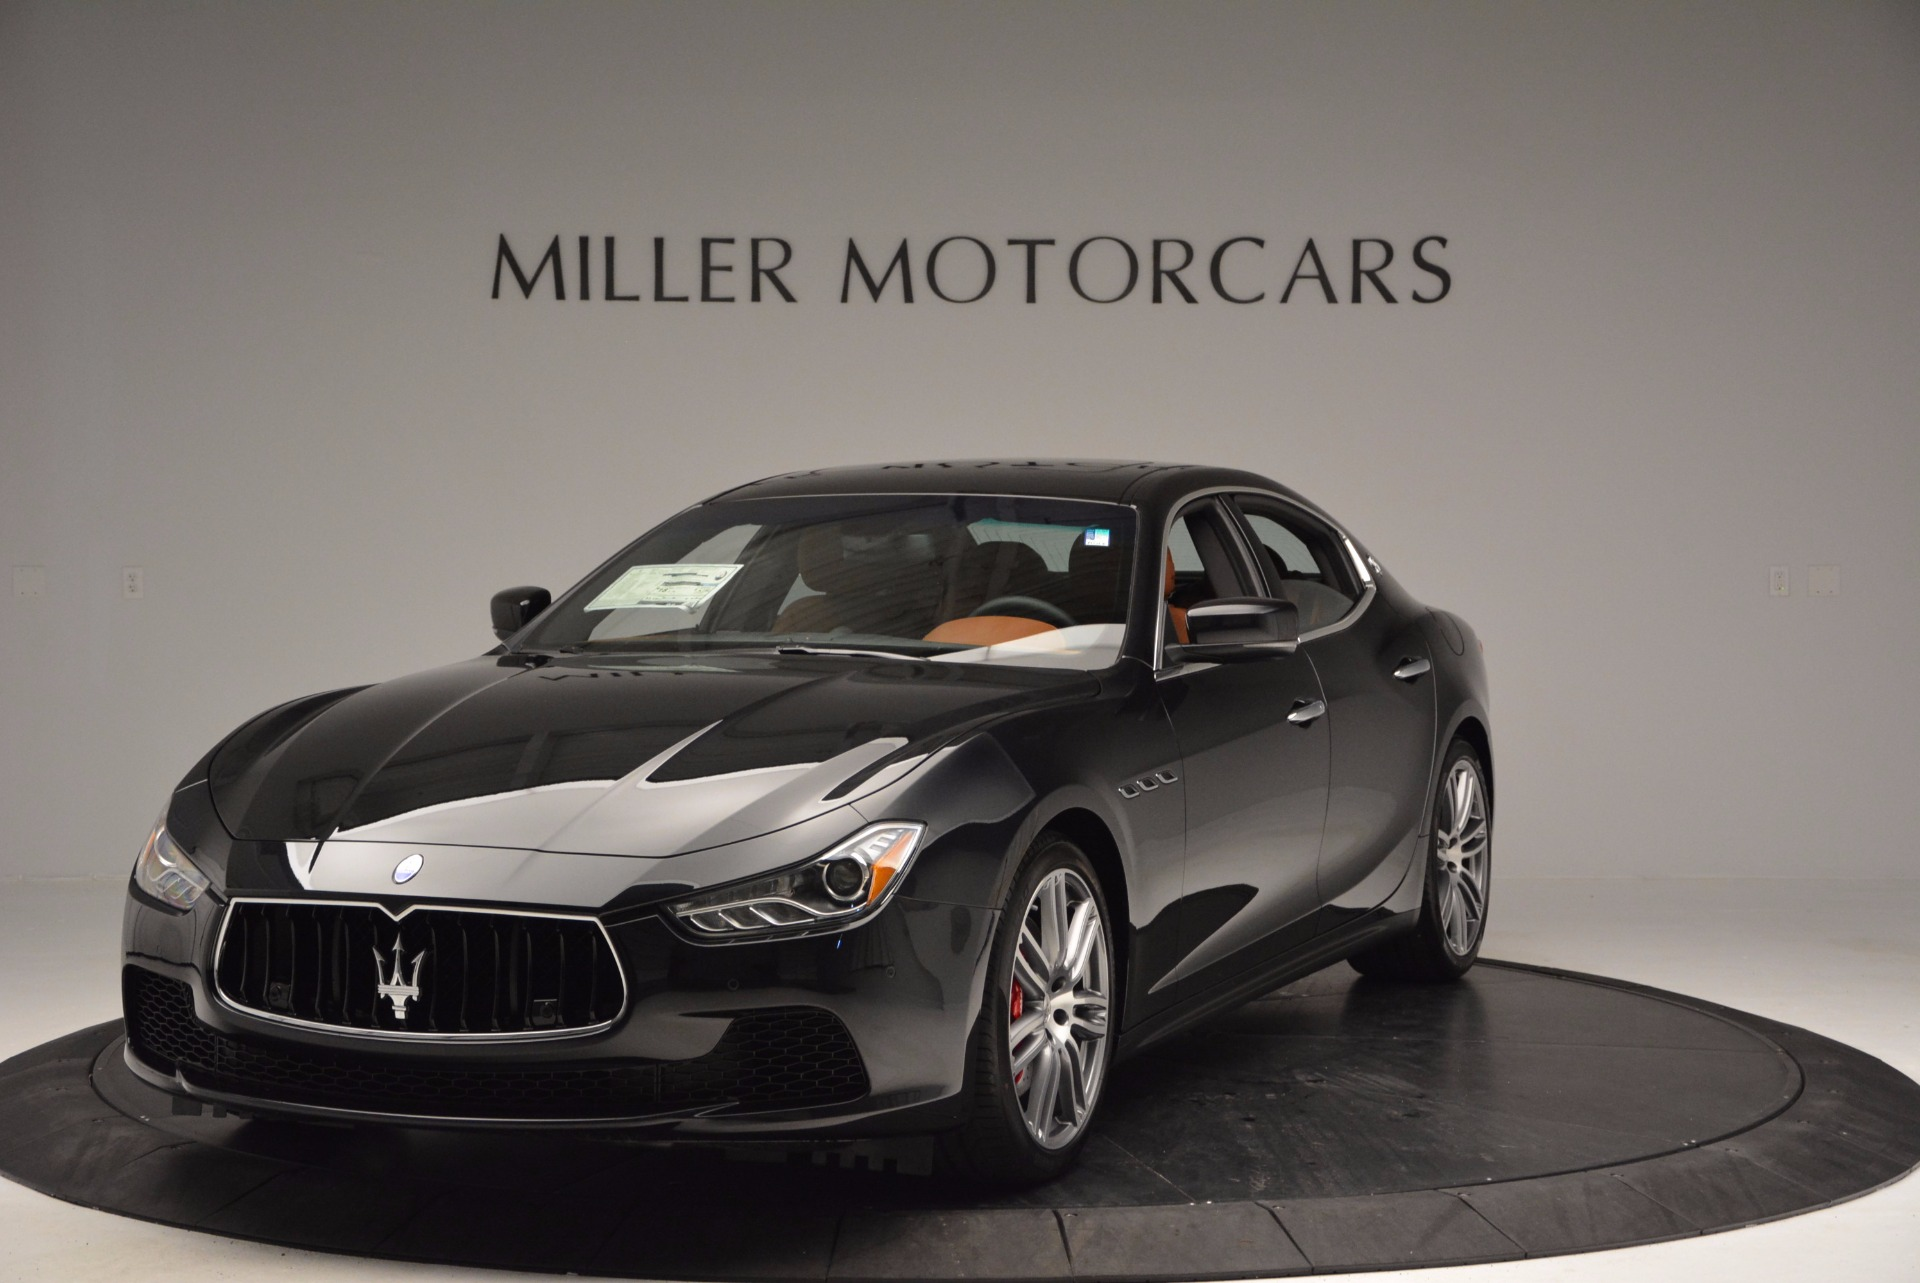 Used 2014 Maserati Ghibli S Q4 for sale Sold at Rolls-Royce Motor Cars Greenwich in Greenwich CT 06830 1